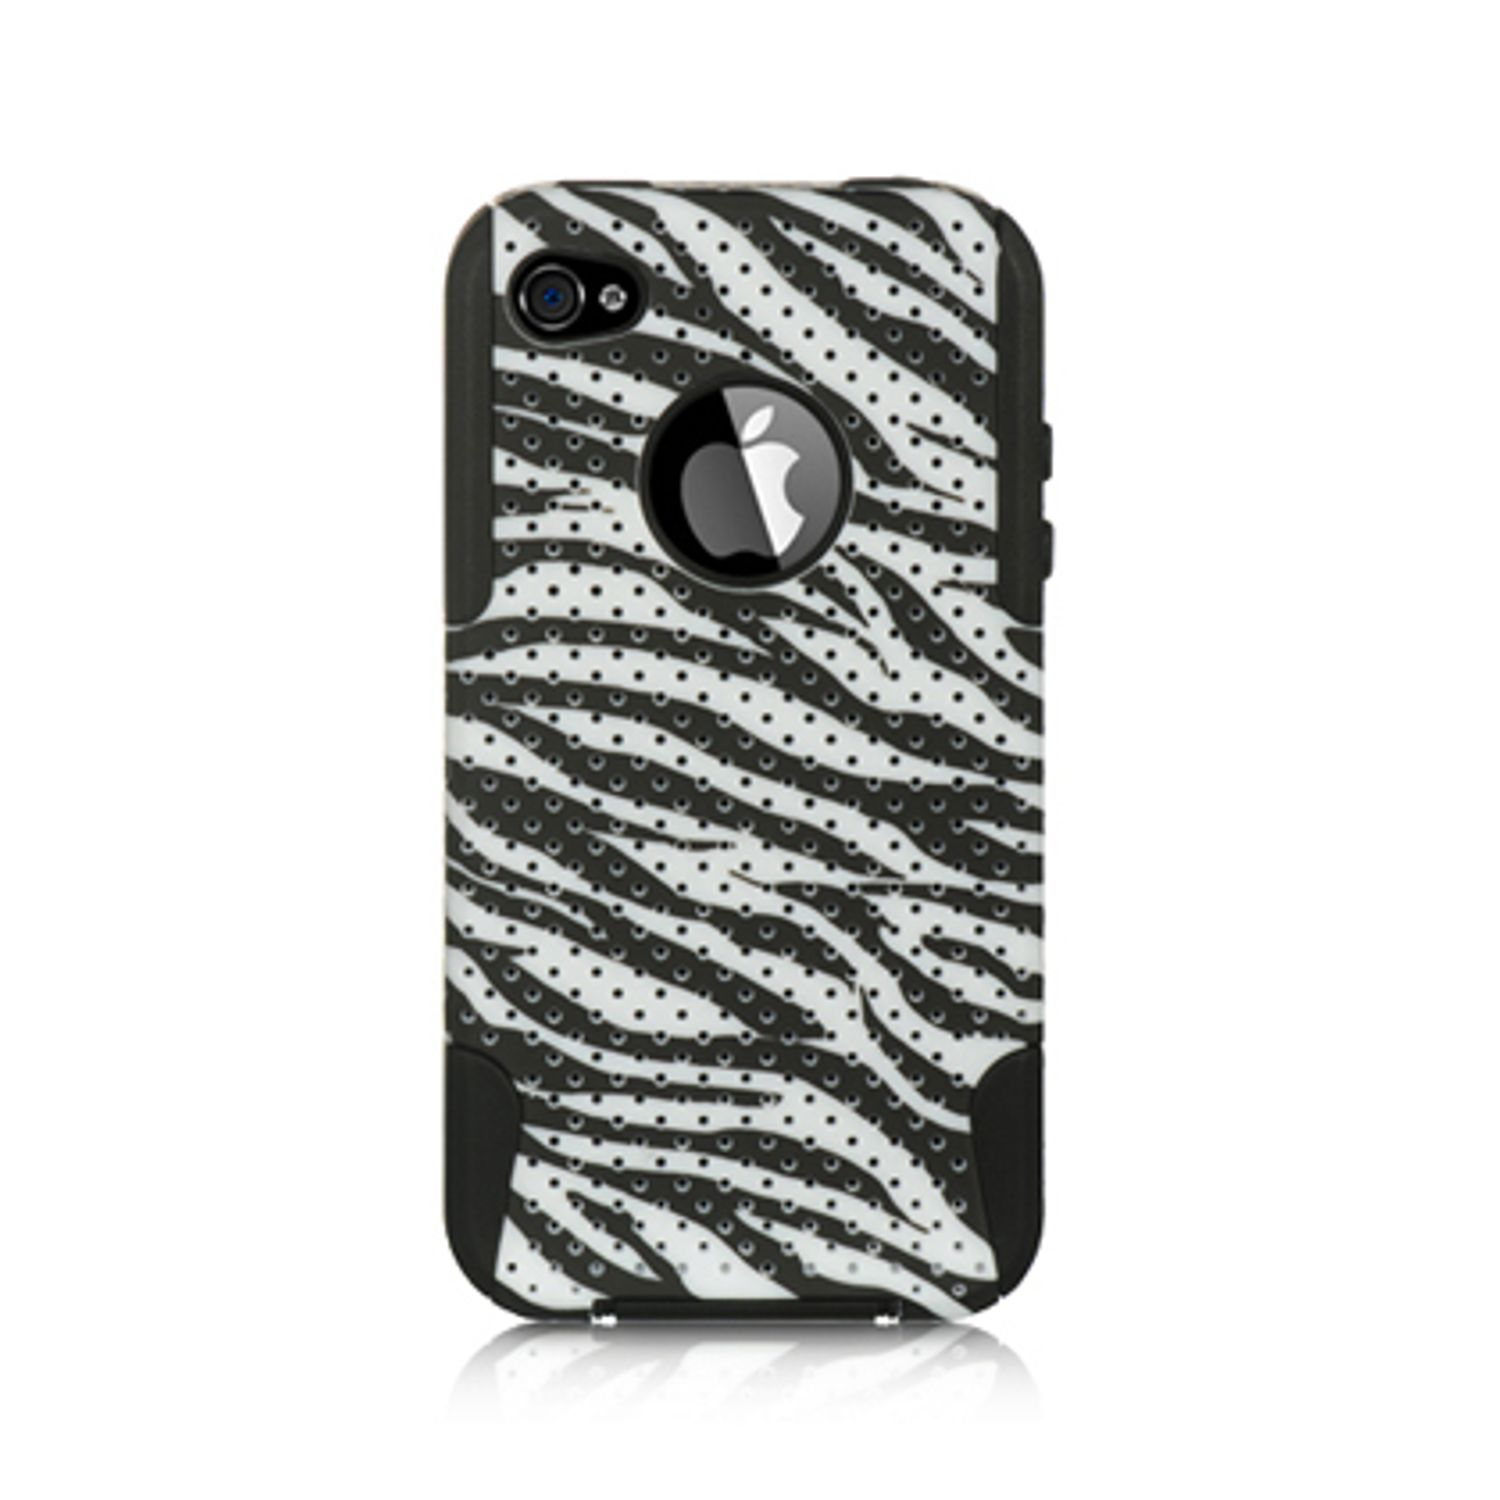 iPhone 4S Case, by Insten Zebra Hybrid Dual Layer Hard Plastic / TPU Shockproof Case Cover  For Apple iPhone 4 / 4S - Black/White